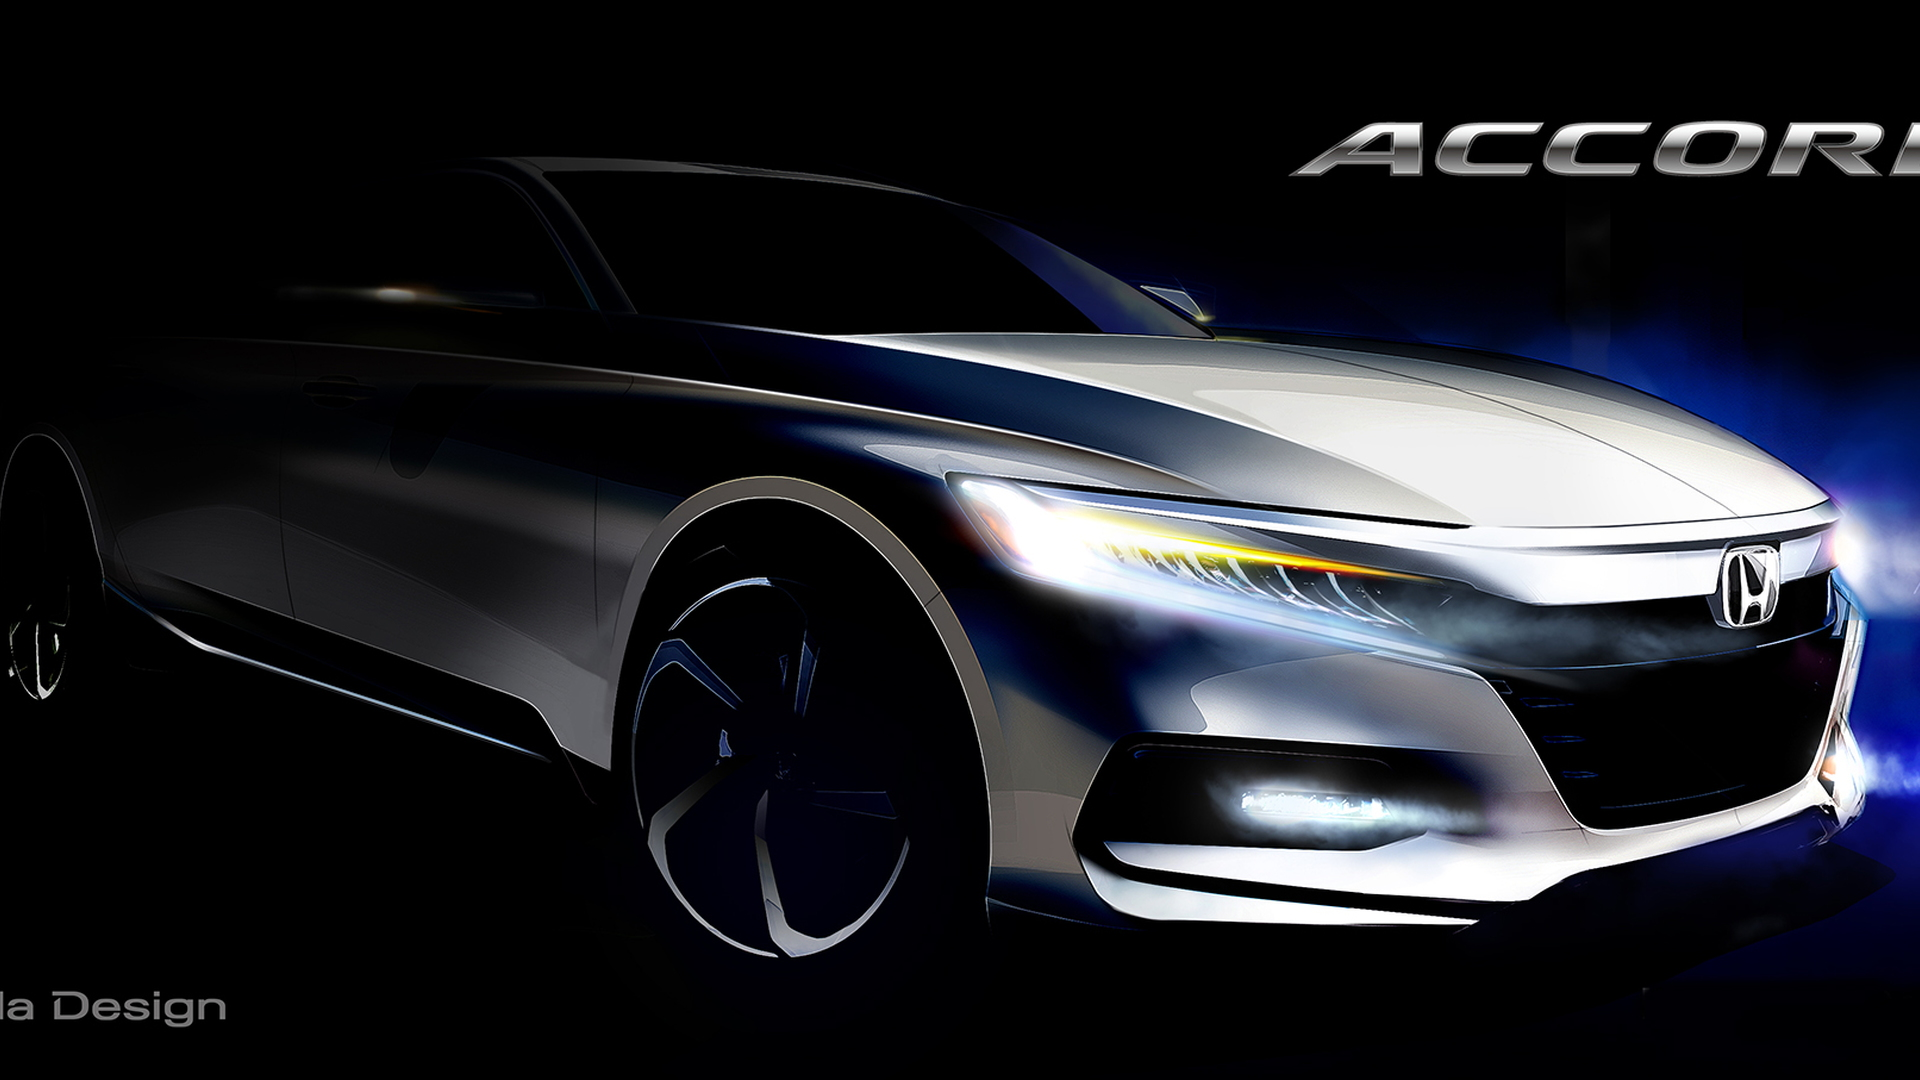 Honda Accord Concept 2018 >> 5 Things To Expect From The 2018 Honda Accord